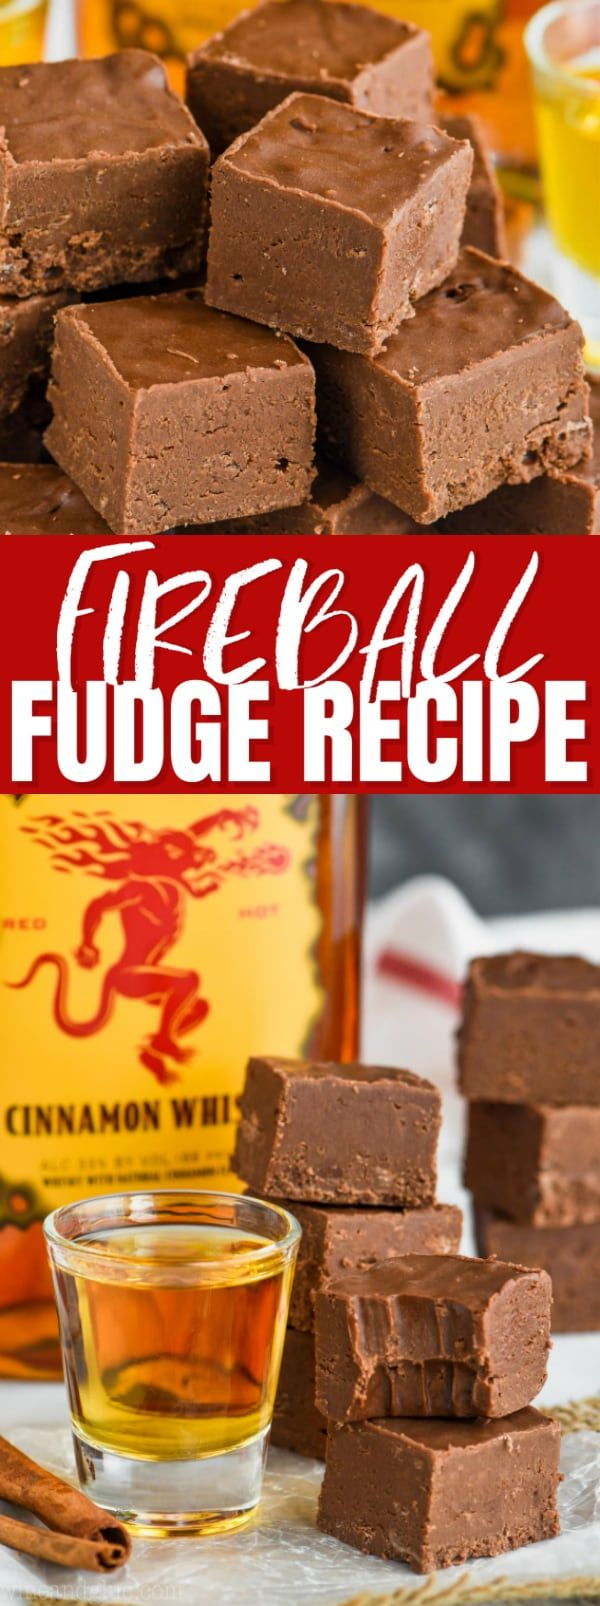 This Easy Fireball Fudge Recipe Is The Perfect Recipe To Make For The Holidays Or Anytime An Easy Fudge Recipe Ma Fudge Recipes Fudge Recipes Easy Fudge Easy